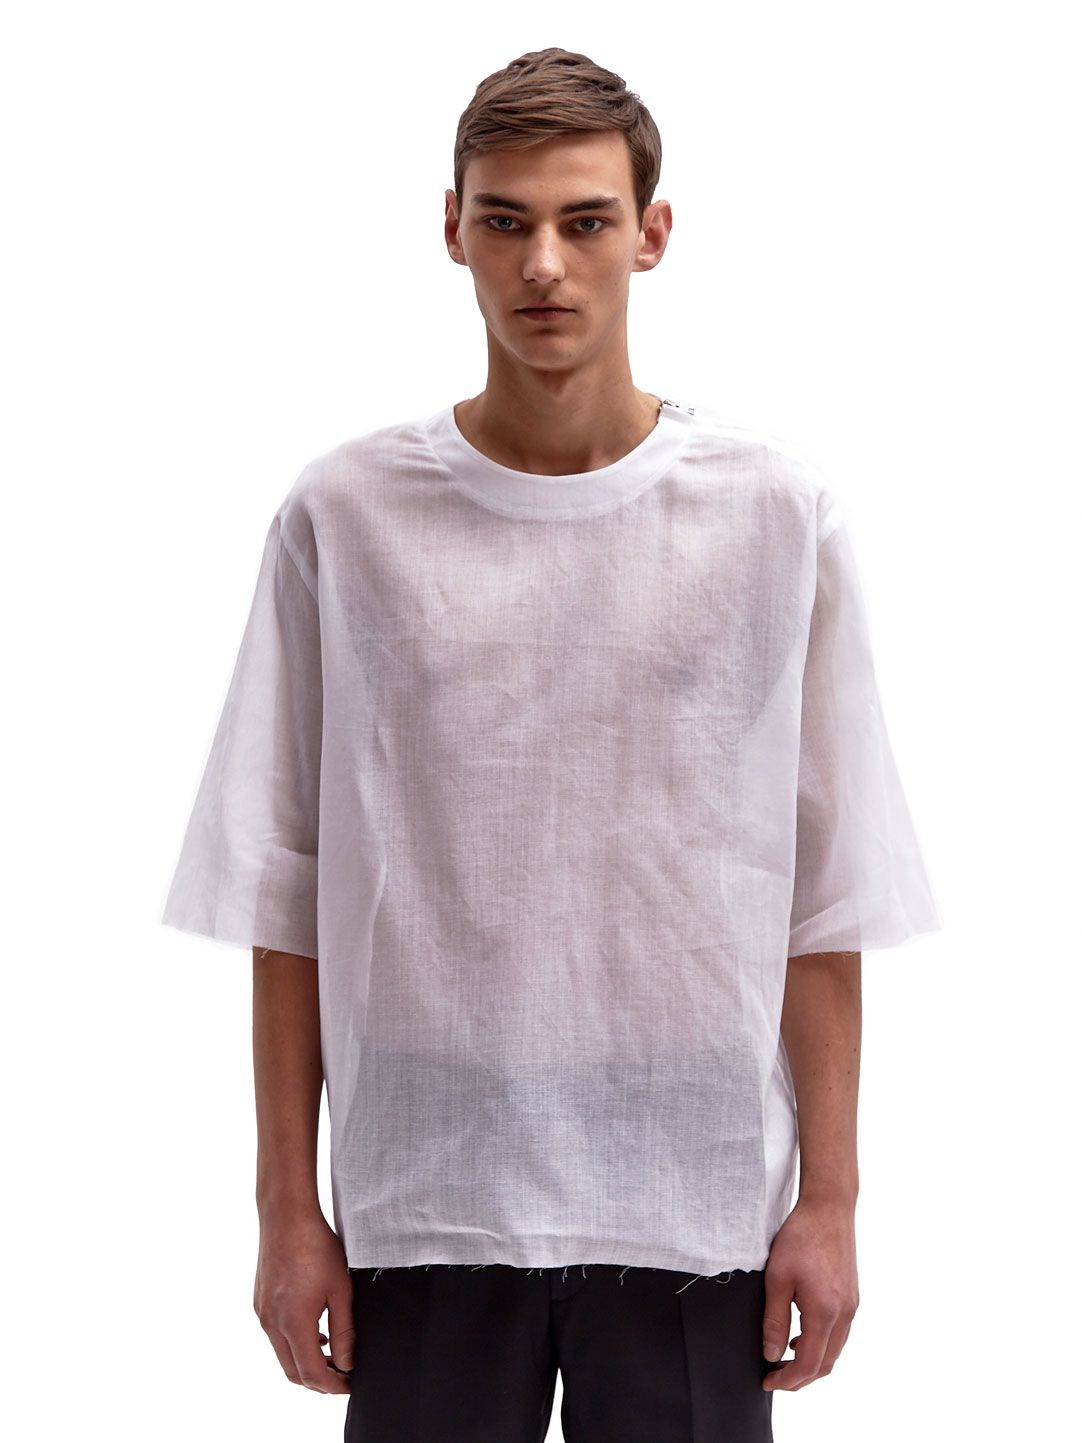 Yang Li Men s Oversized Raw Edge Sheer Cotton T-Shirt  7f7d6b744b03